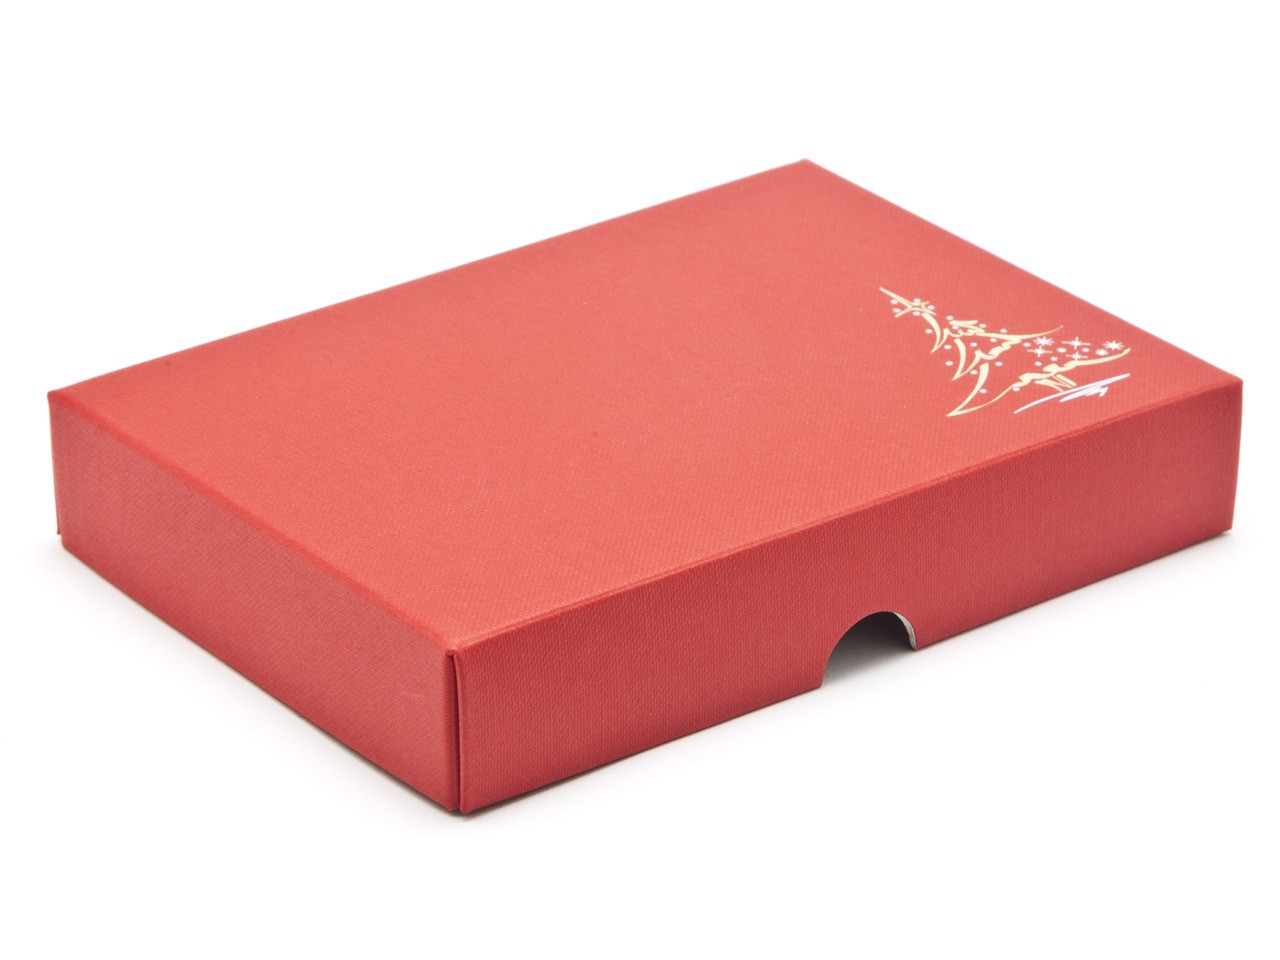 12 Choc Wibalin Christmas Tree Design Foiled Lid Red Lid Only Stunning Shallow Fold Up Gift Box Lid With Printed Or Foiled Design